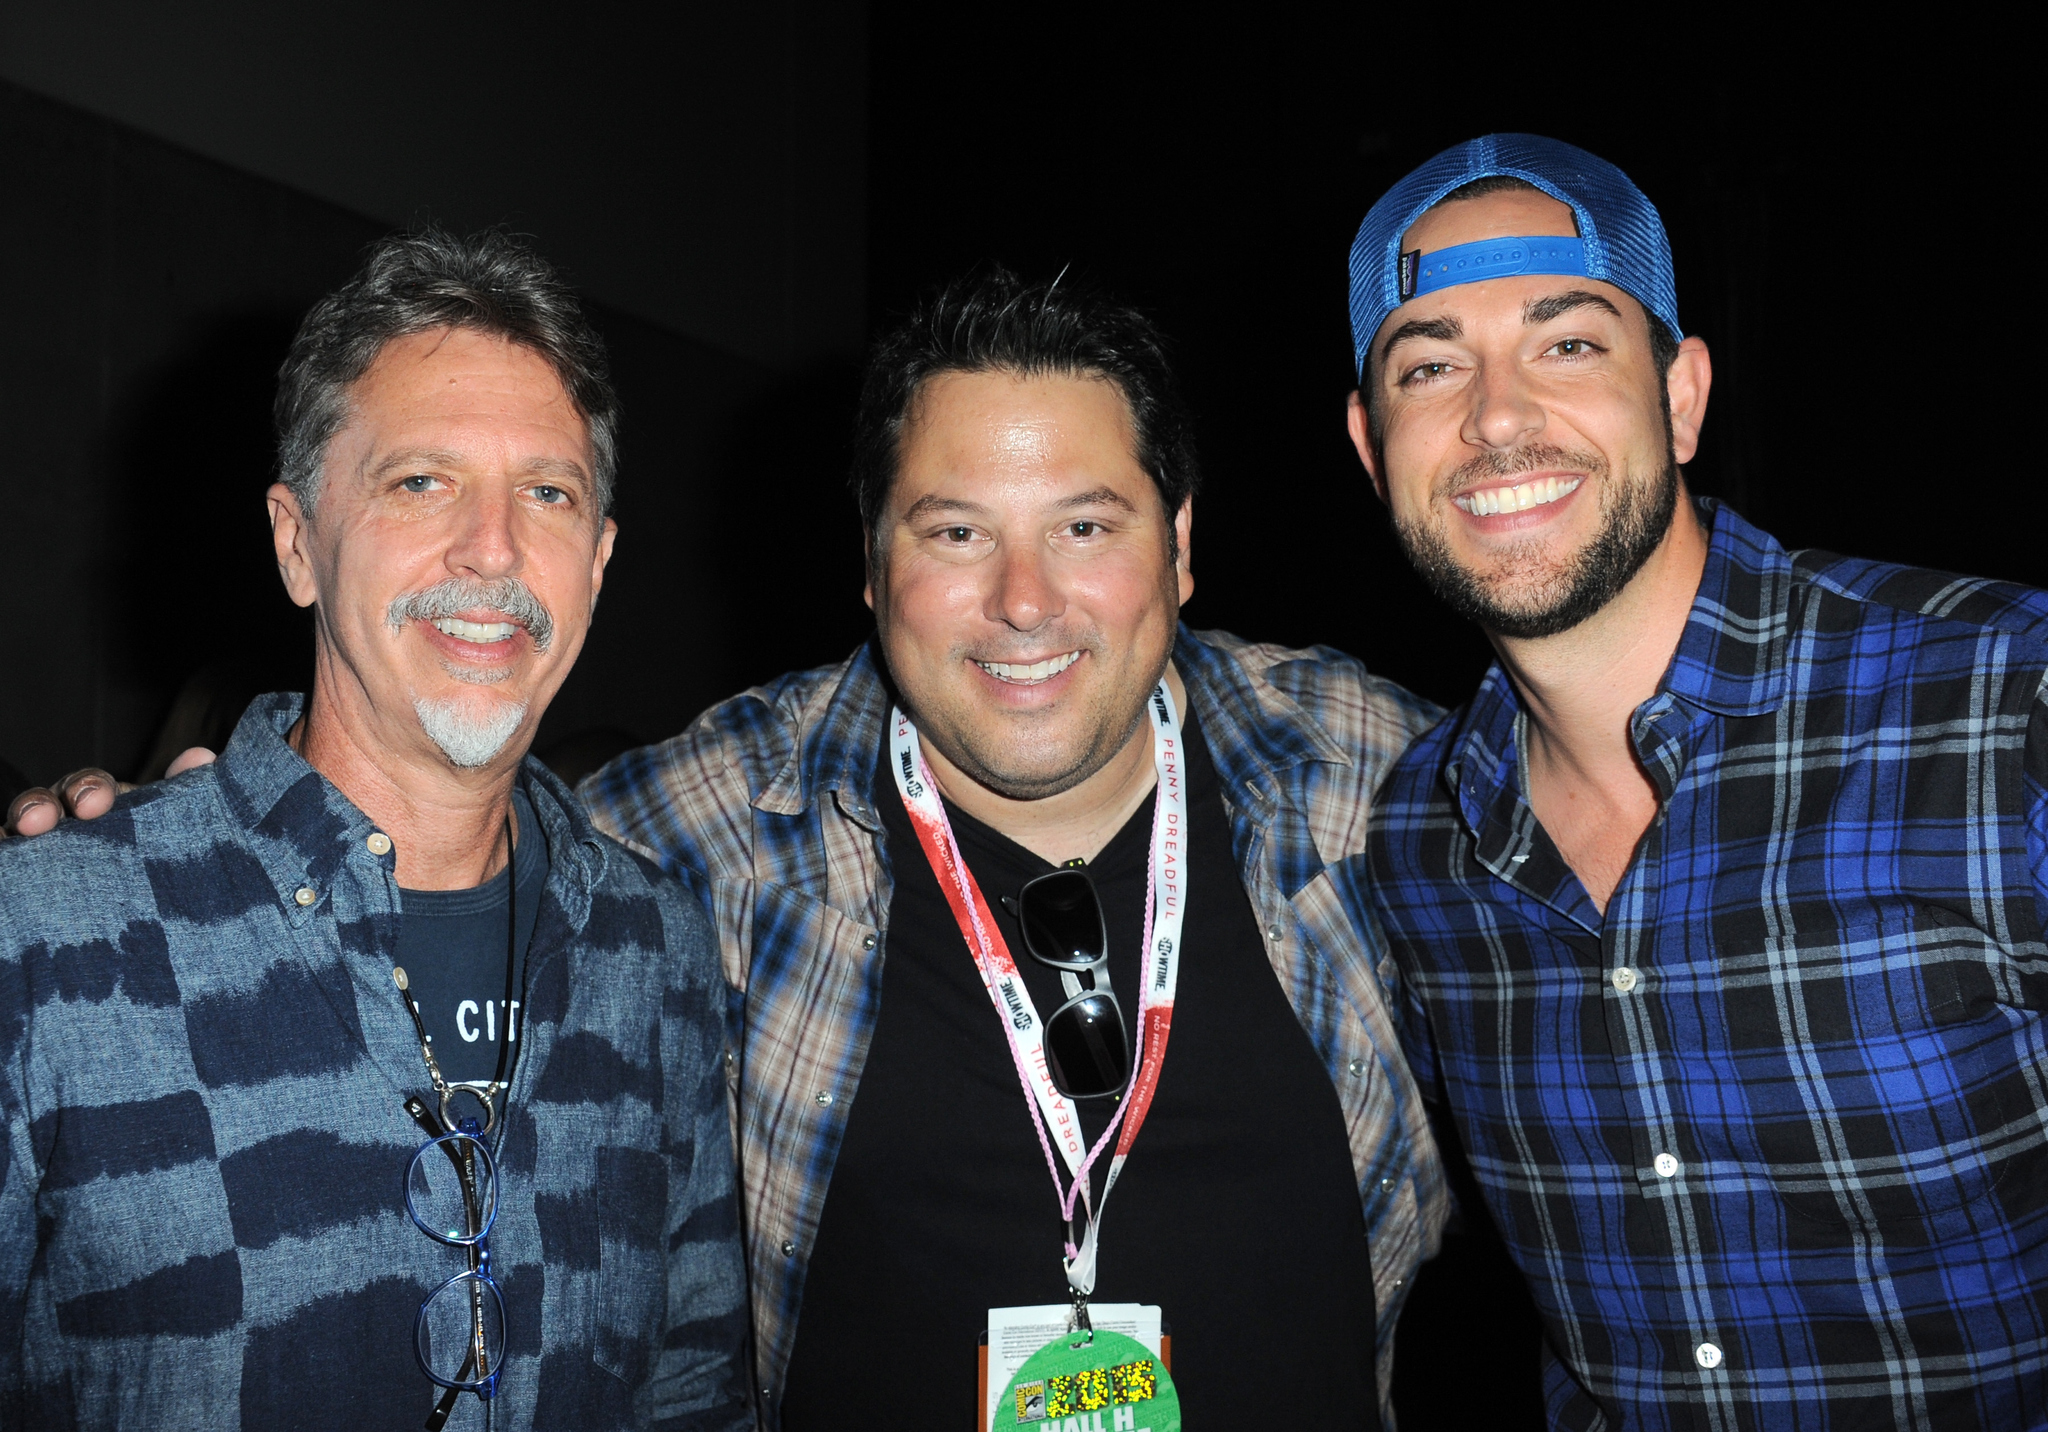 Greg Grunberg, Tim Kring, and Zachary Levi at an event for Heroes Reborn (2015)